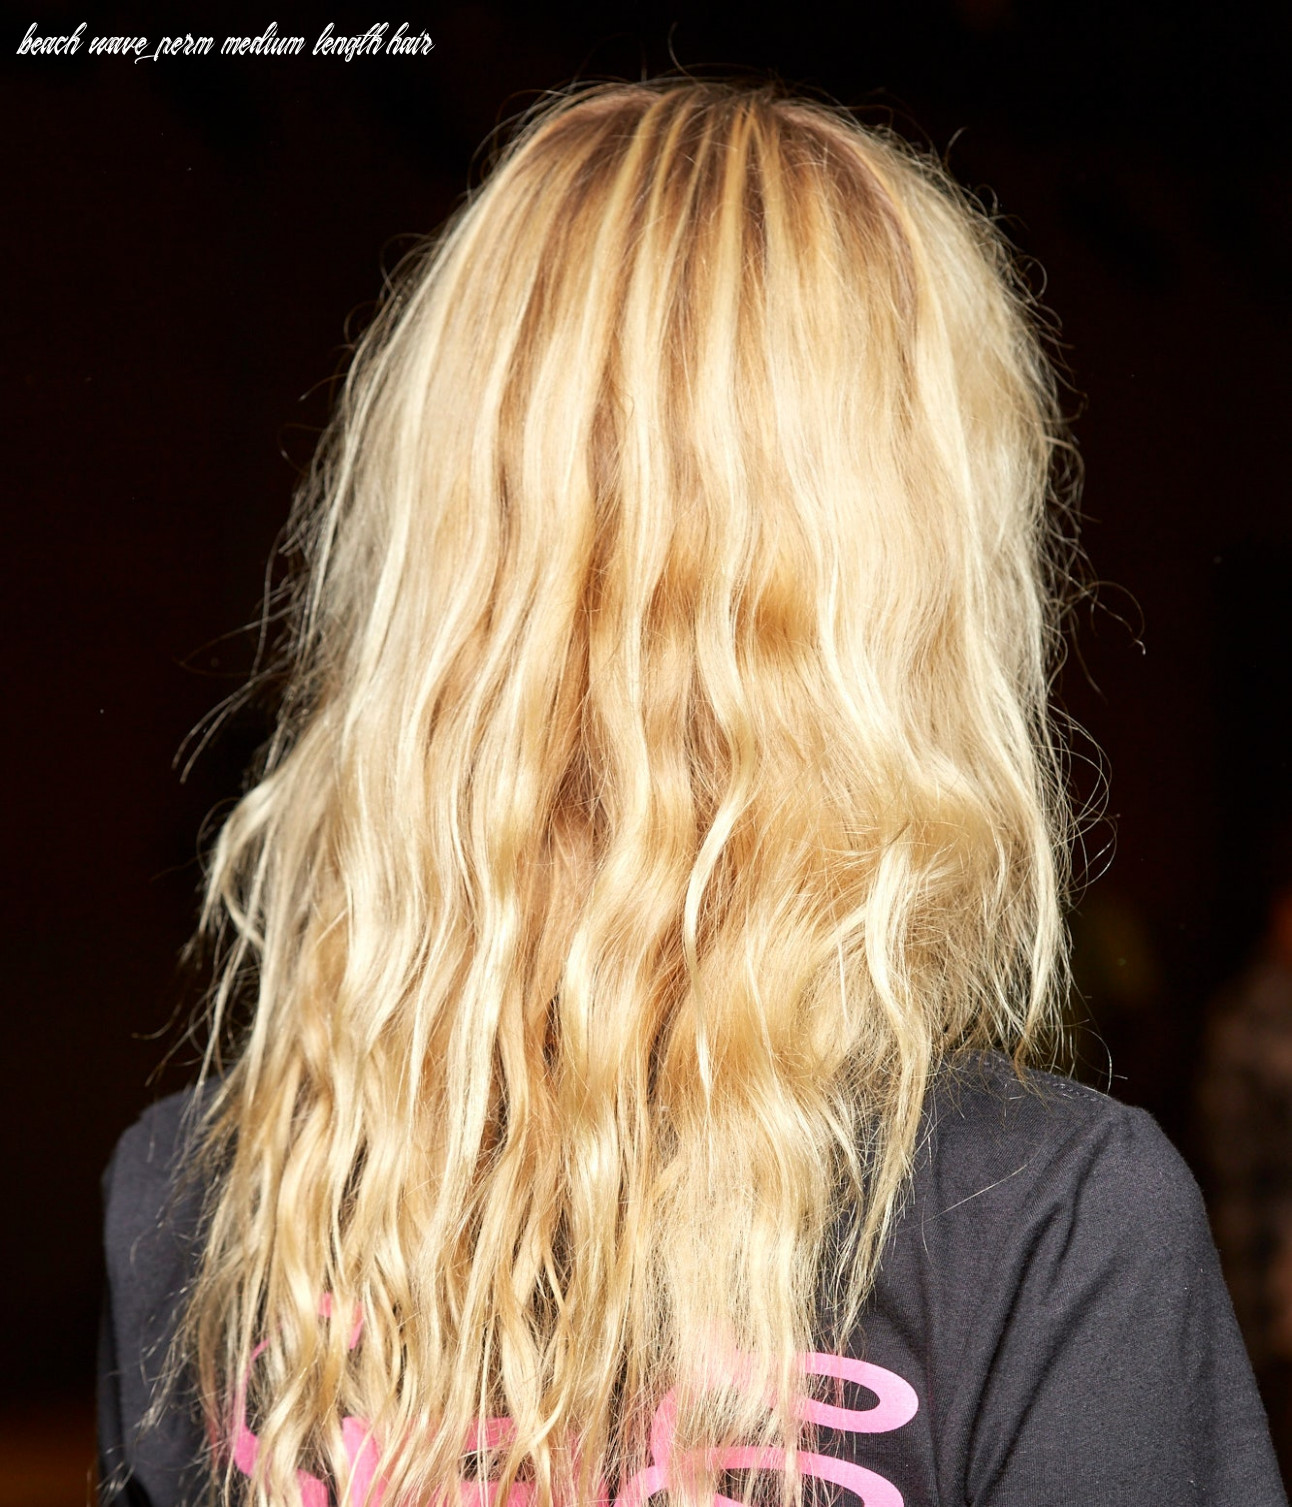 Permanent beach waves: what you need to know before you try them